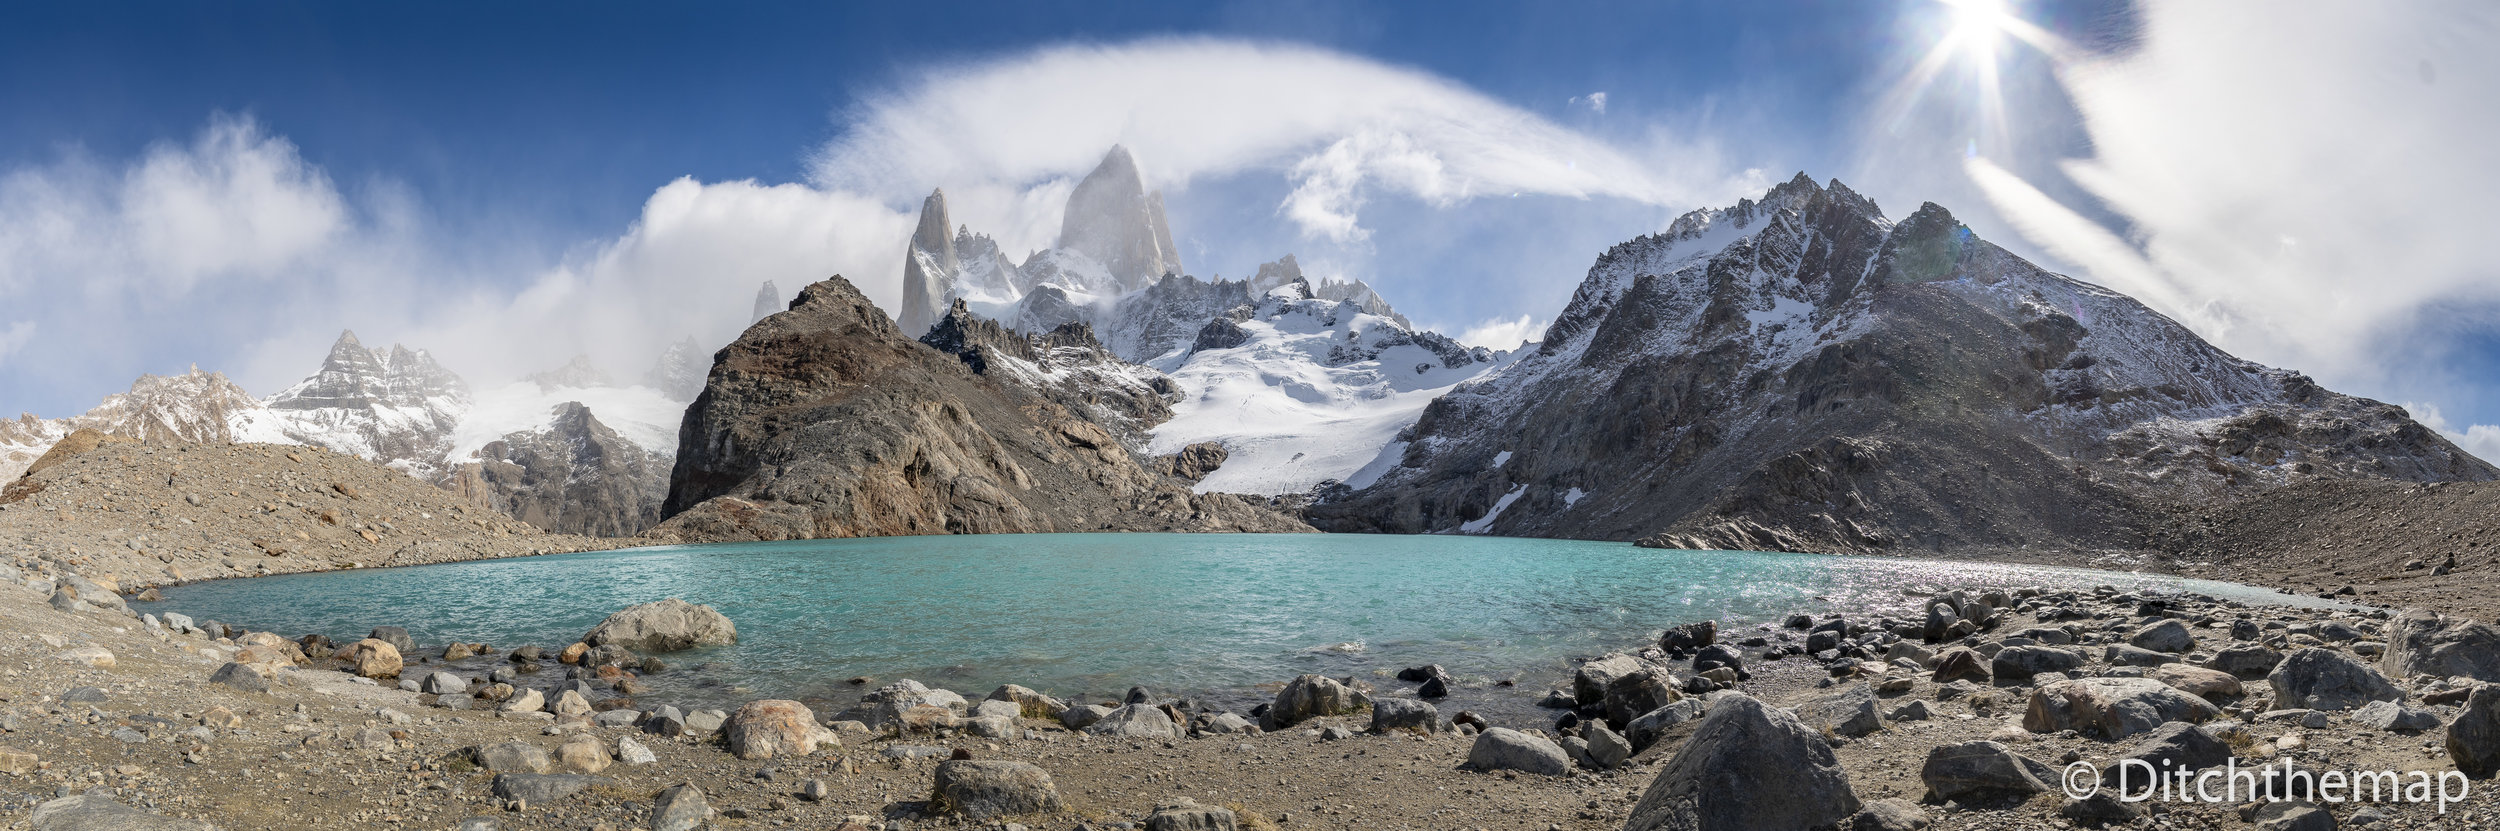 Mt. Fitz Roy Panoramic View